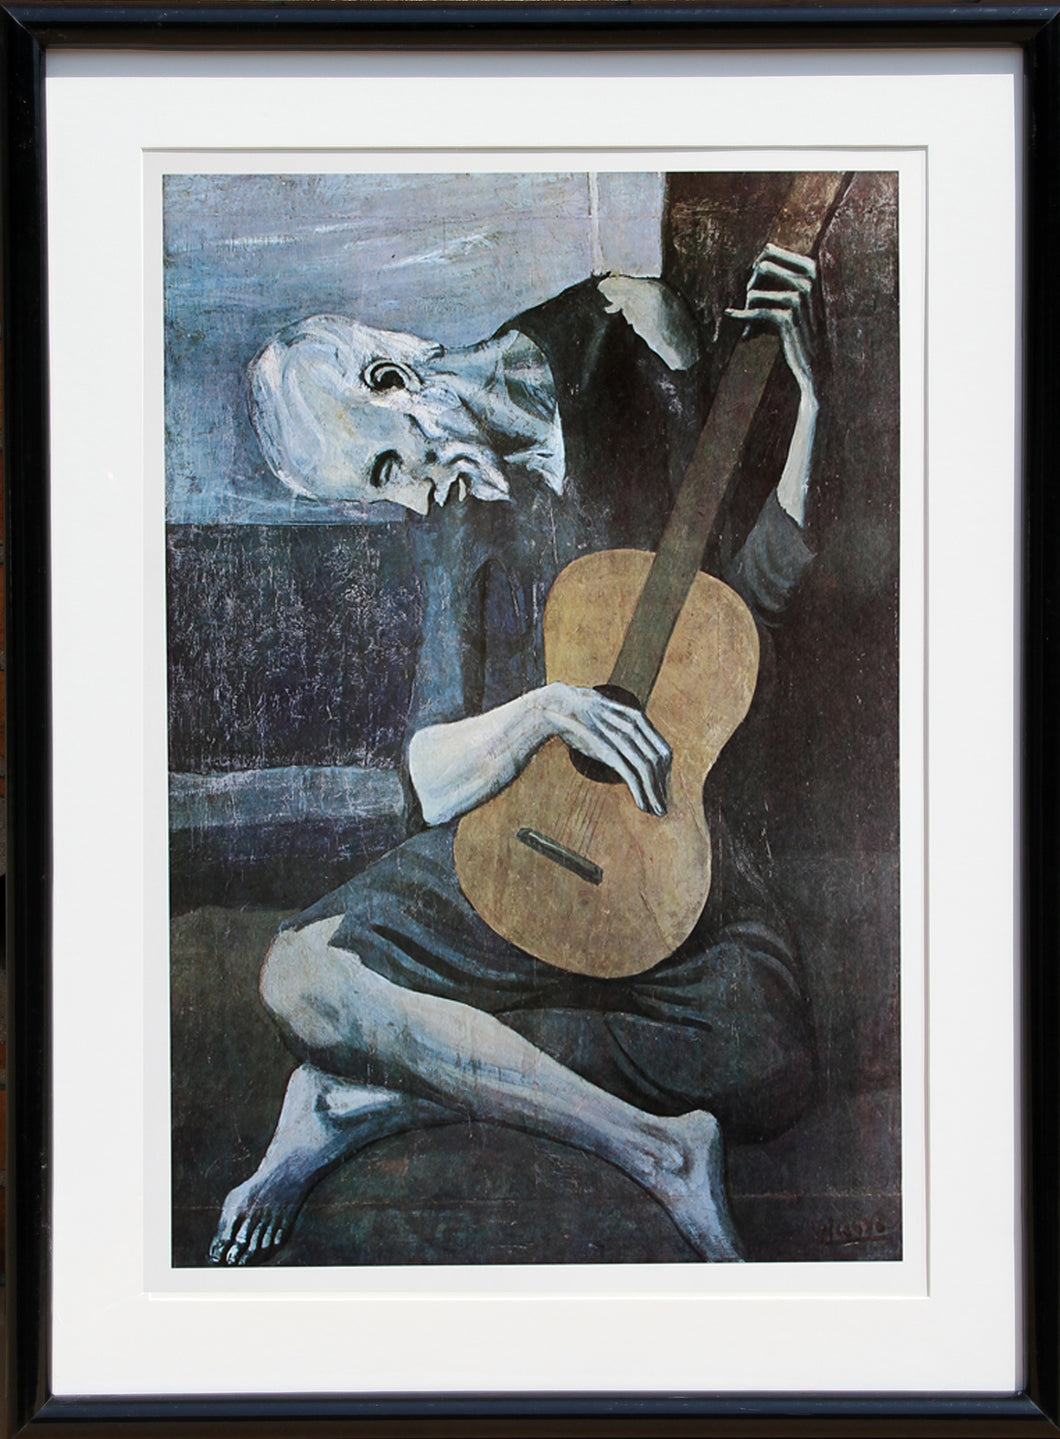 Pablo Picasso, The Old Guitarist, Offset Lithograph